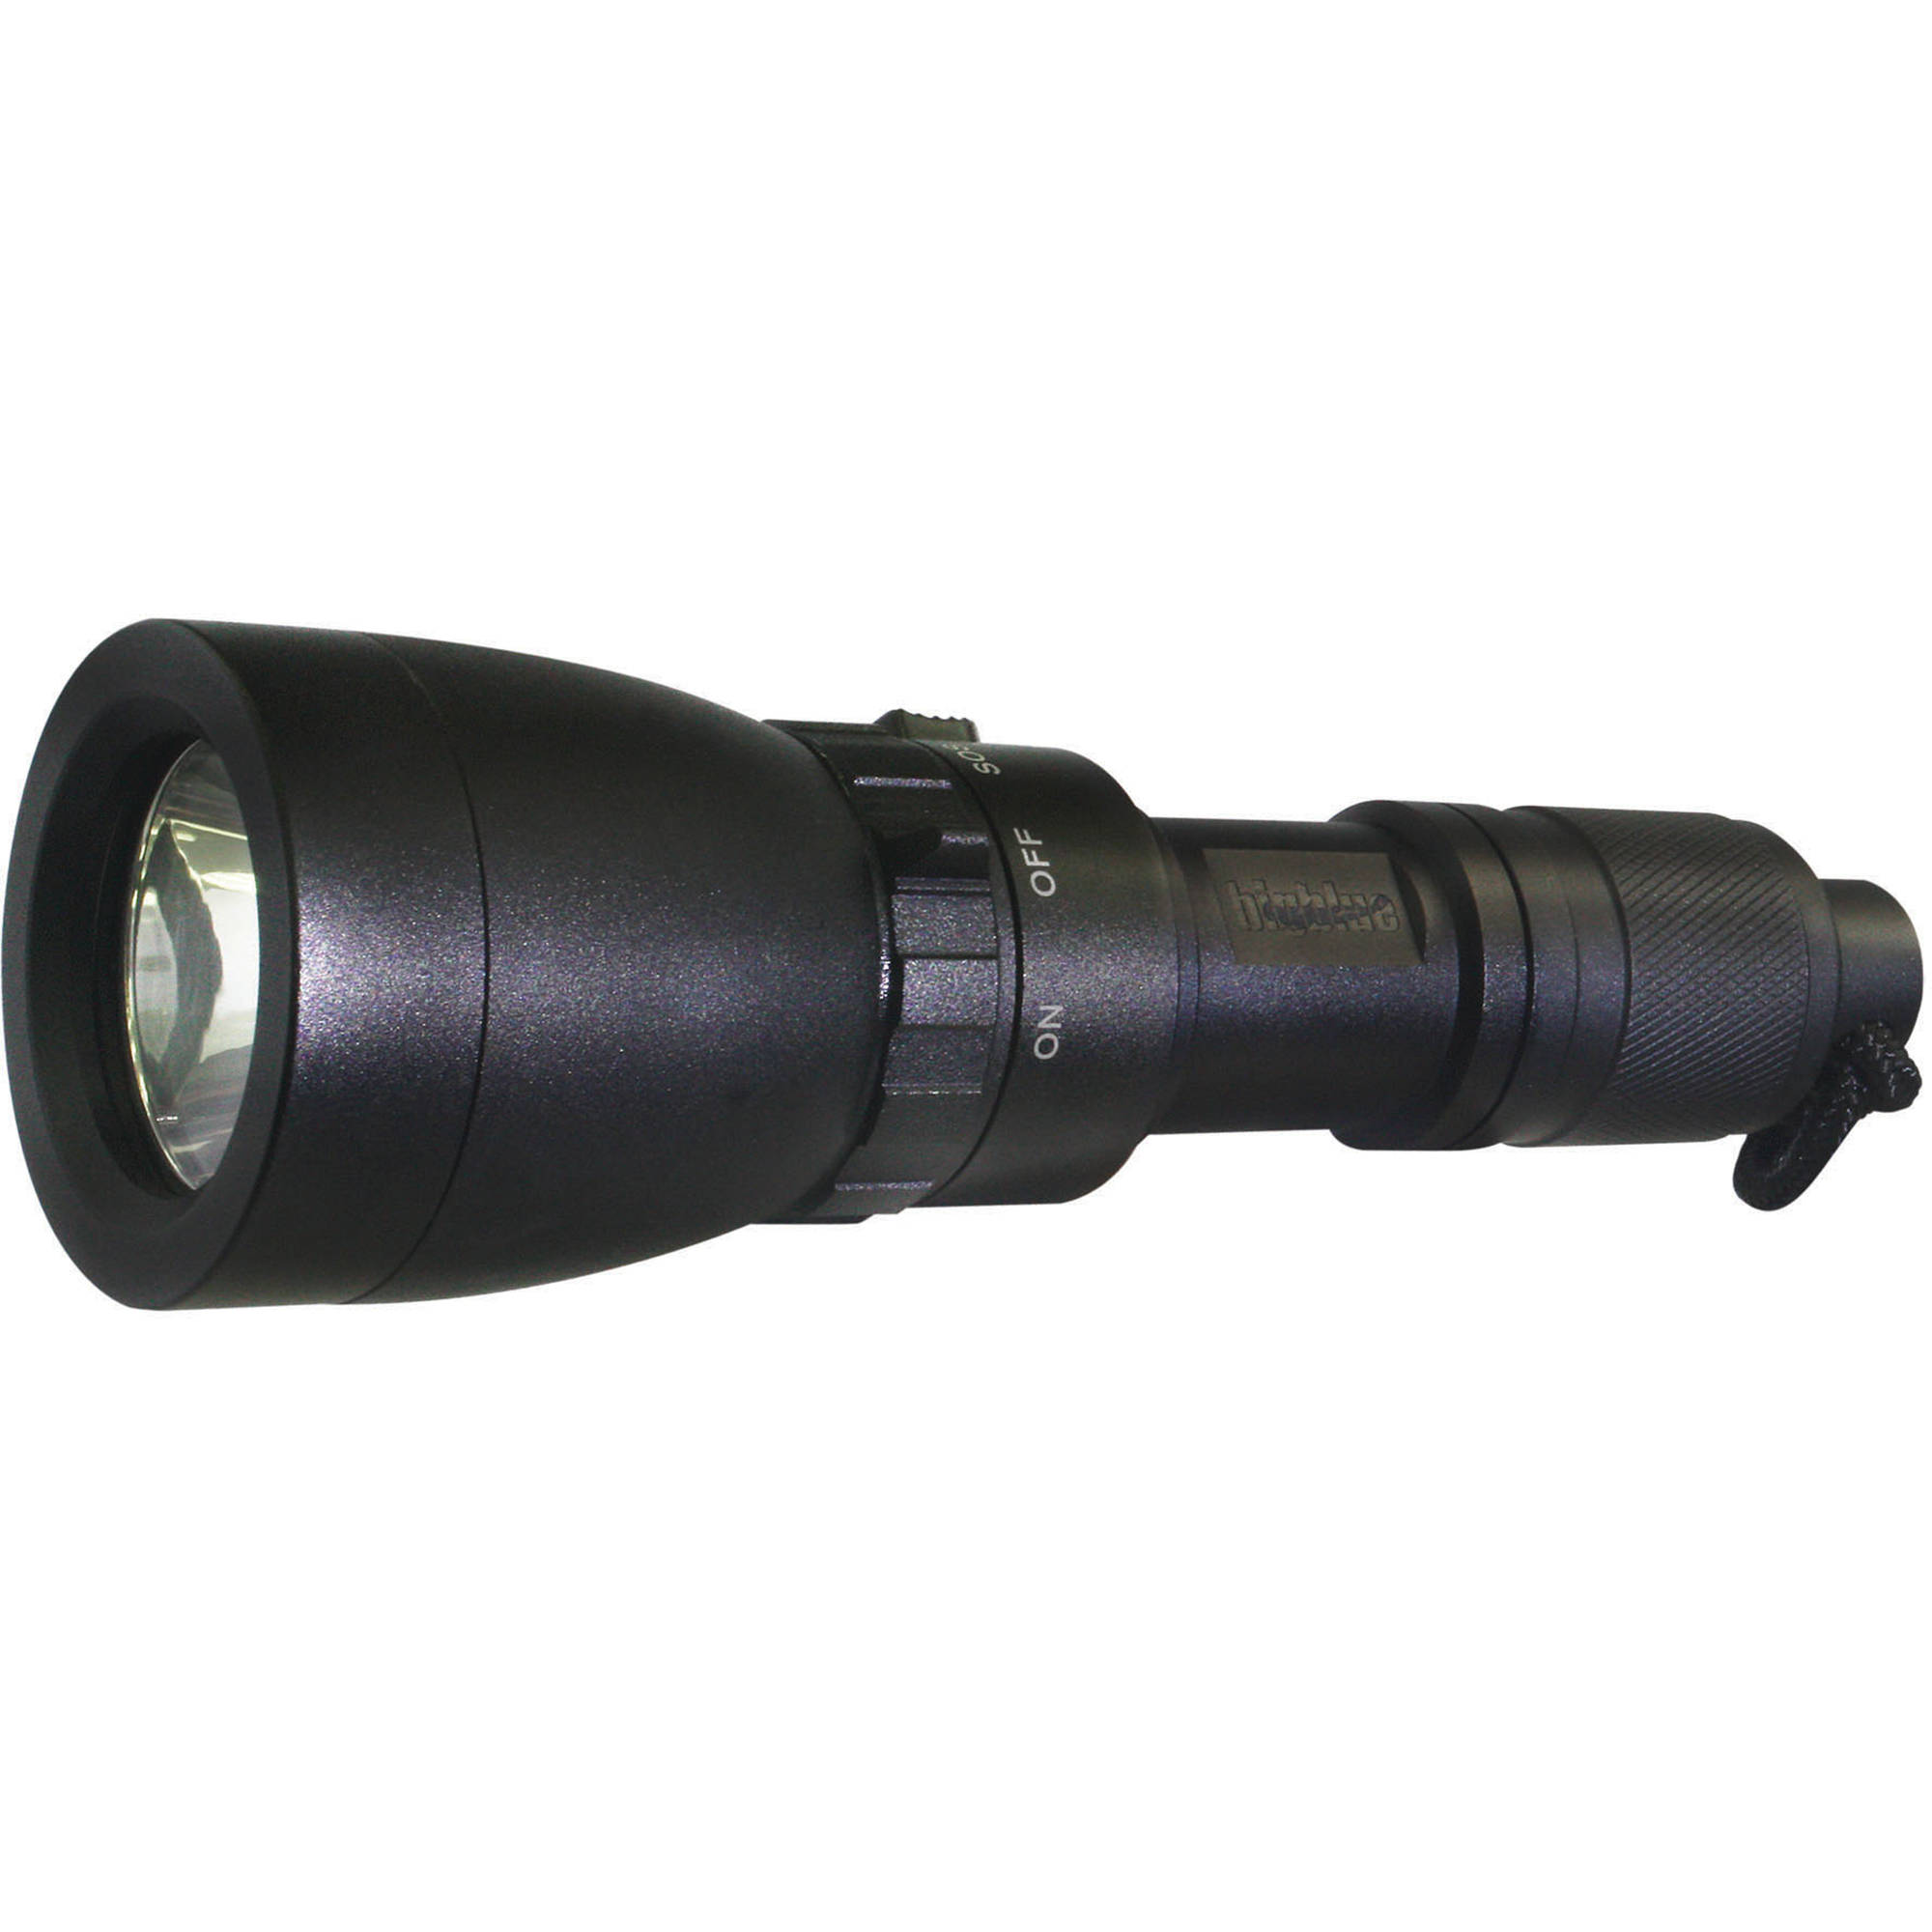 Bigblue AL900N LED Dive Light (Black) AL900N B&H Photo Video